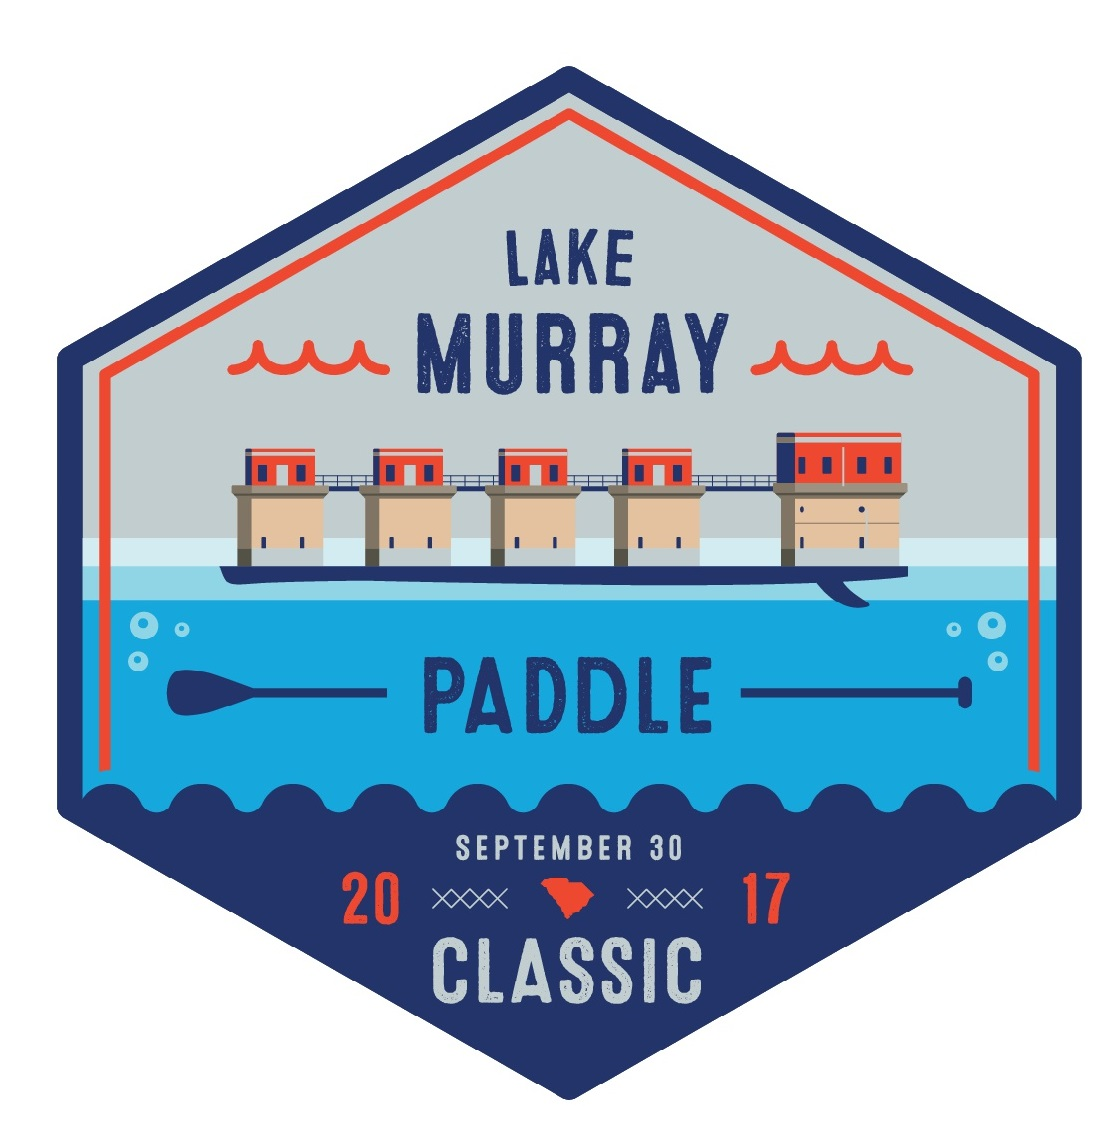 Win two race registrations for the 2017 Lake Murray Paddle Classic!